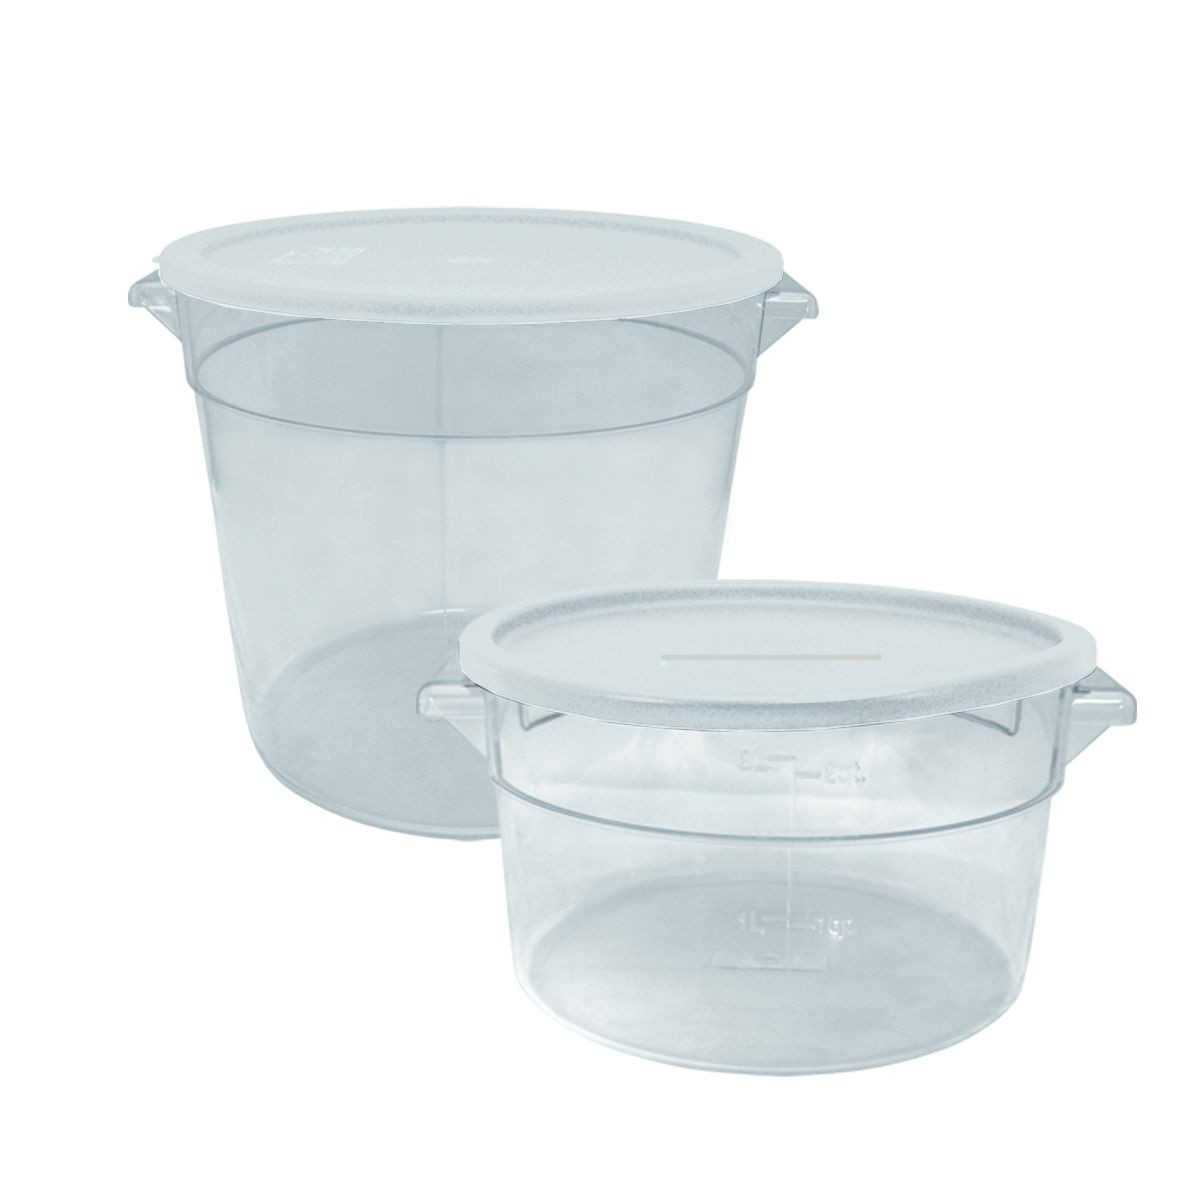 Update International SCR-18PC Round Polycarbonate 18 Qt. Storage Container